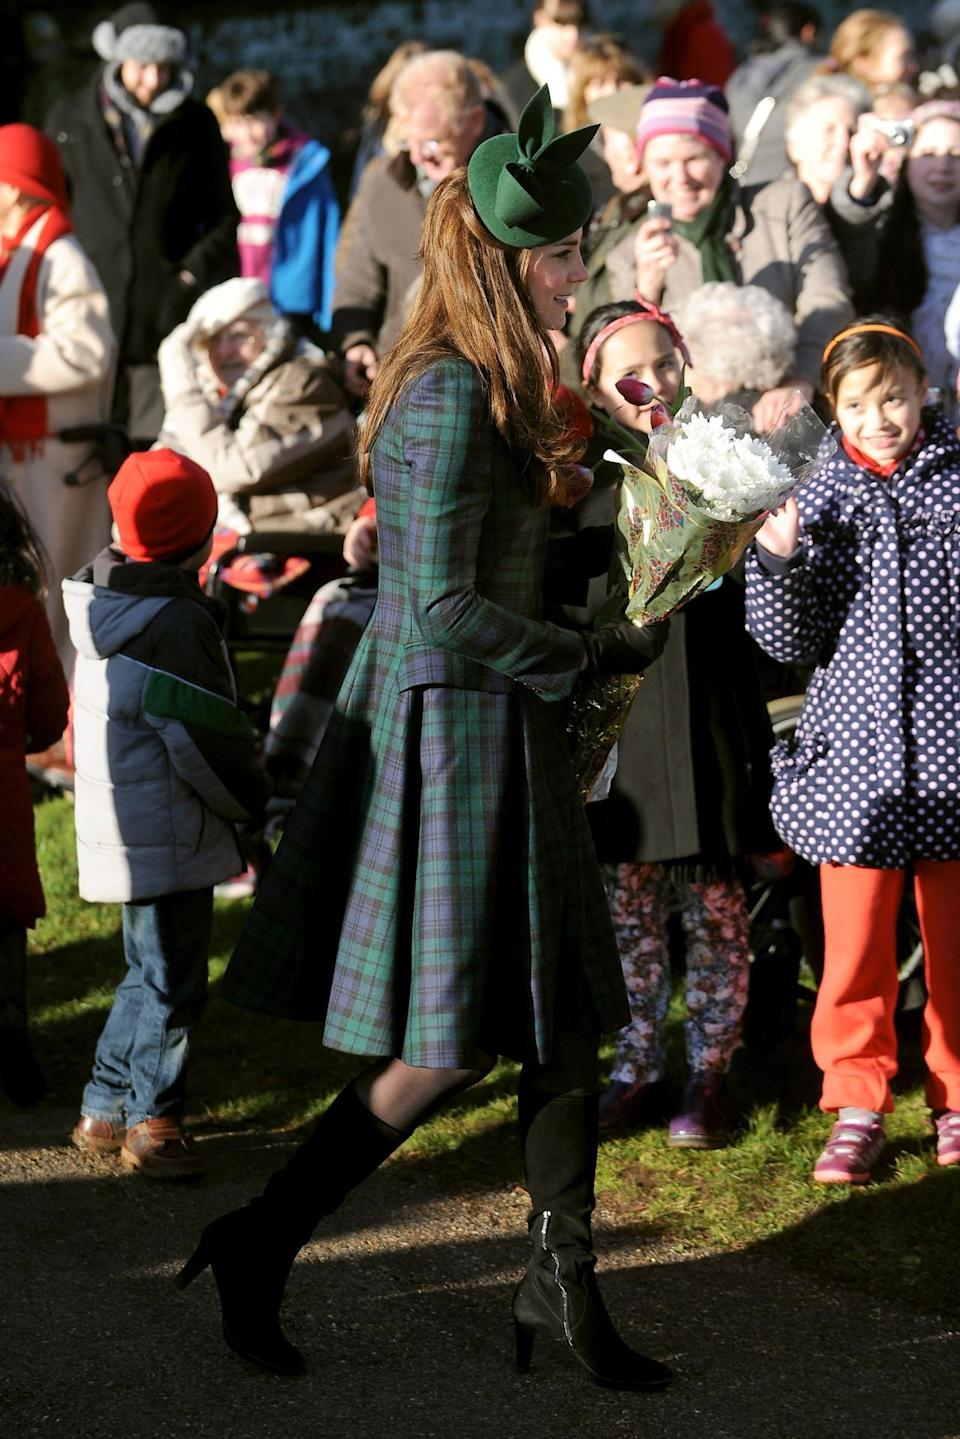 <p>For Christmas Day in Norfolk, Kate donned a tartan coat by Alexander McQueen's diffusion line, McQ. She also wore a dark green hat by Gina Foster and her trusty knee high Aquatalia boots.</p><p><i>[Photo: PA]</i></p>